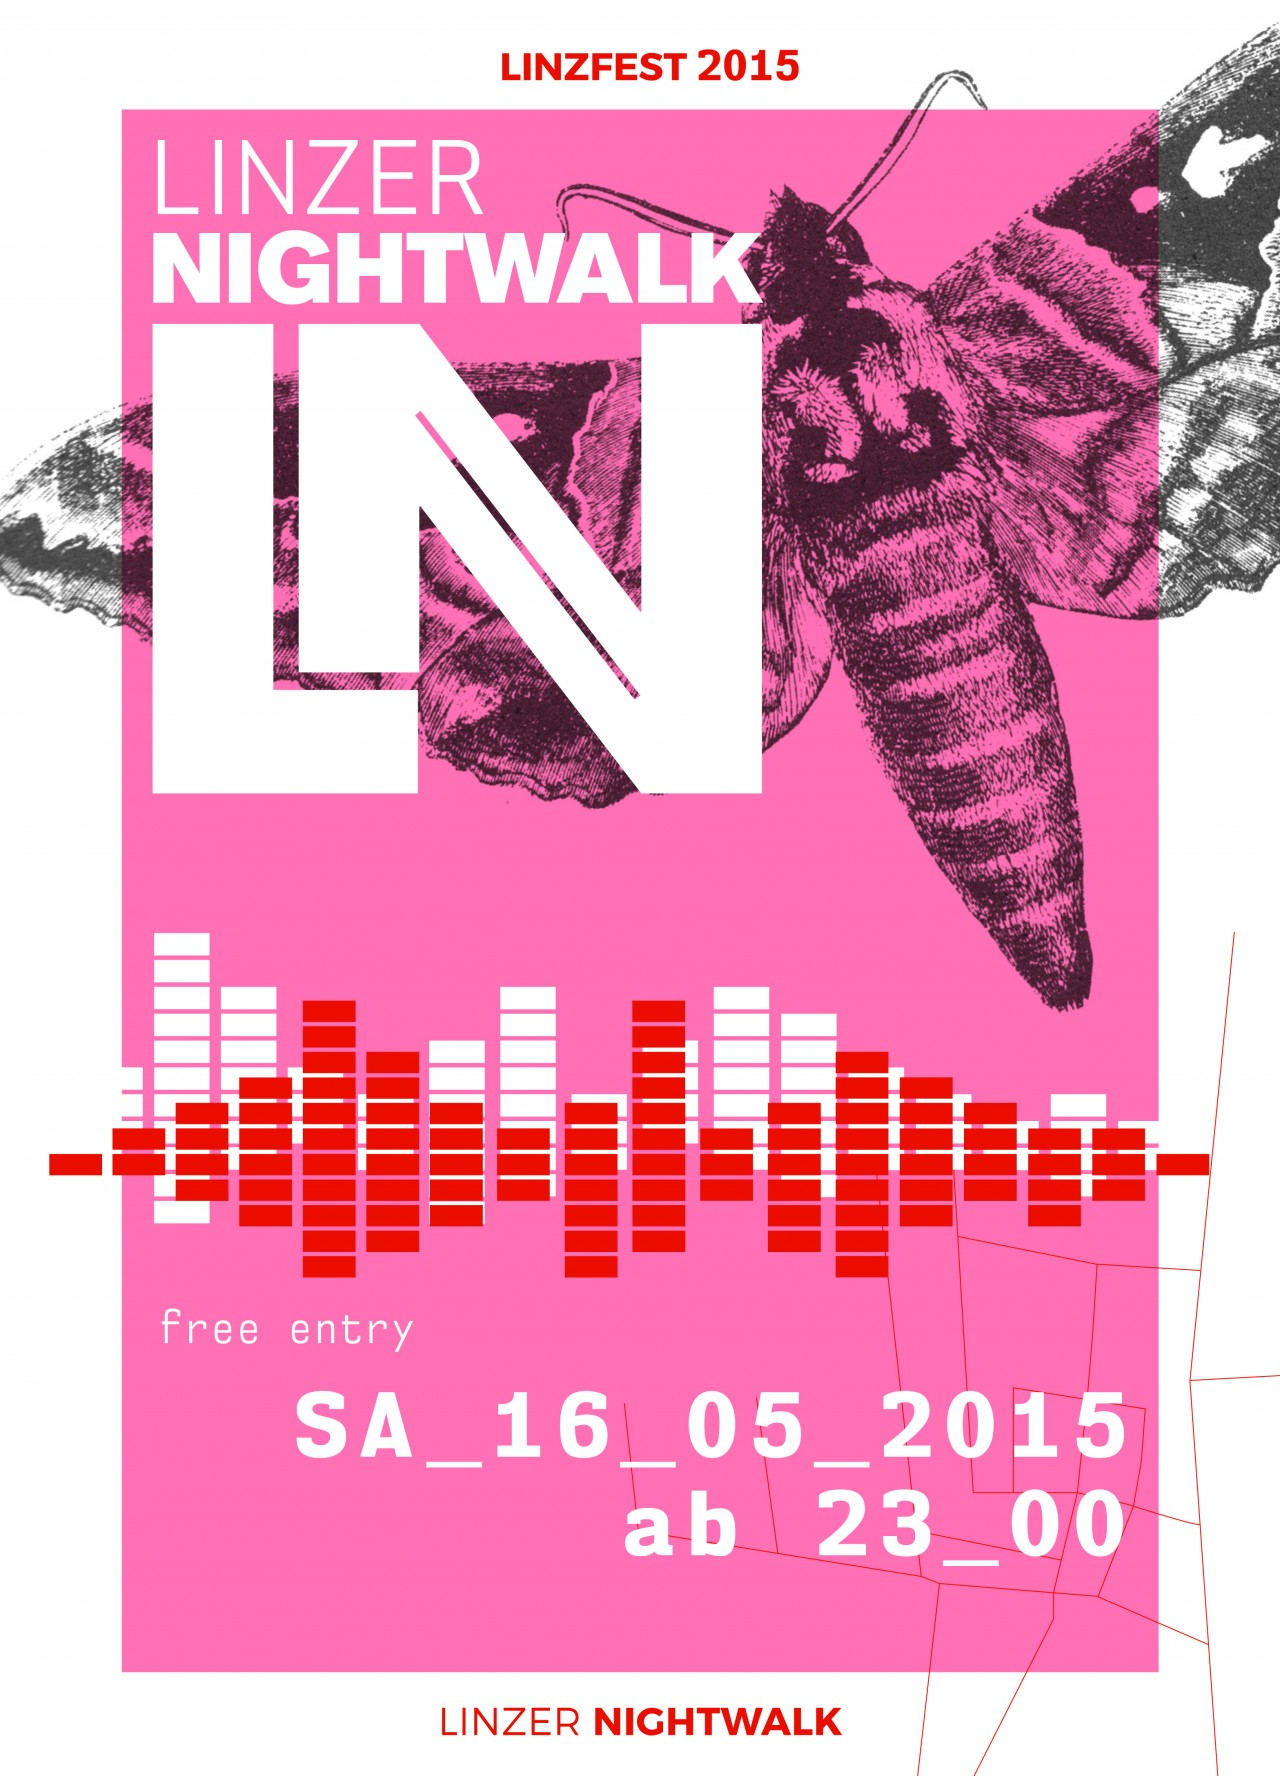 Linzer Nightwalk 2015